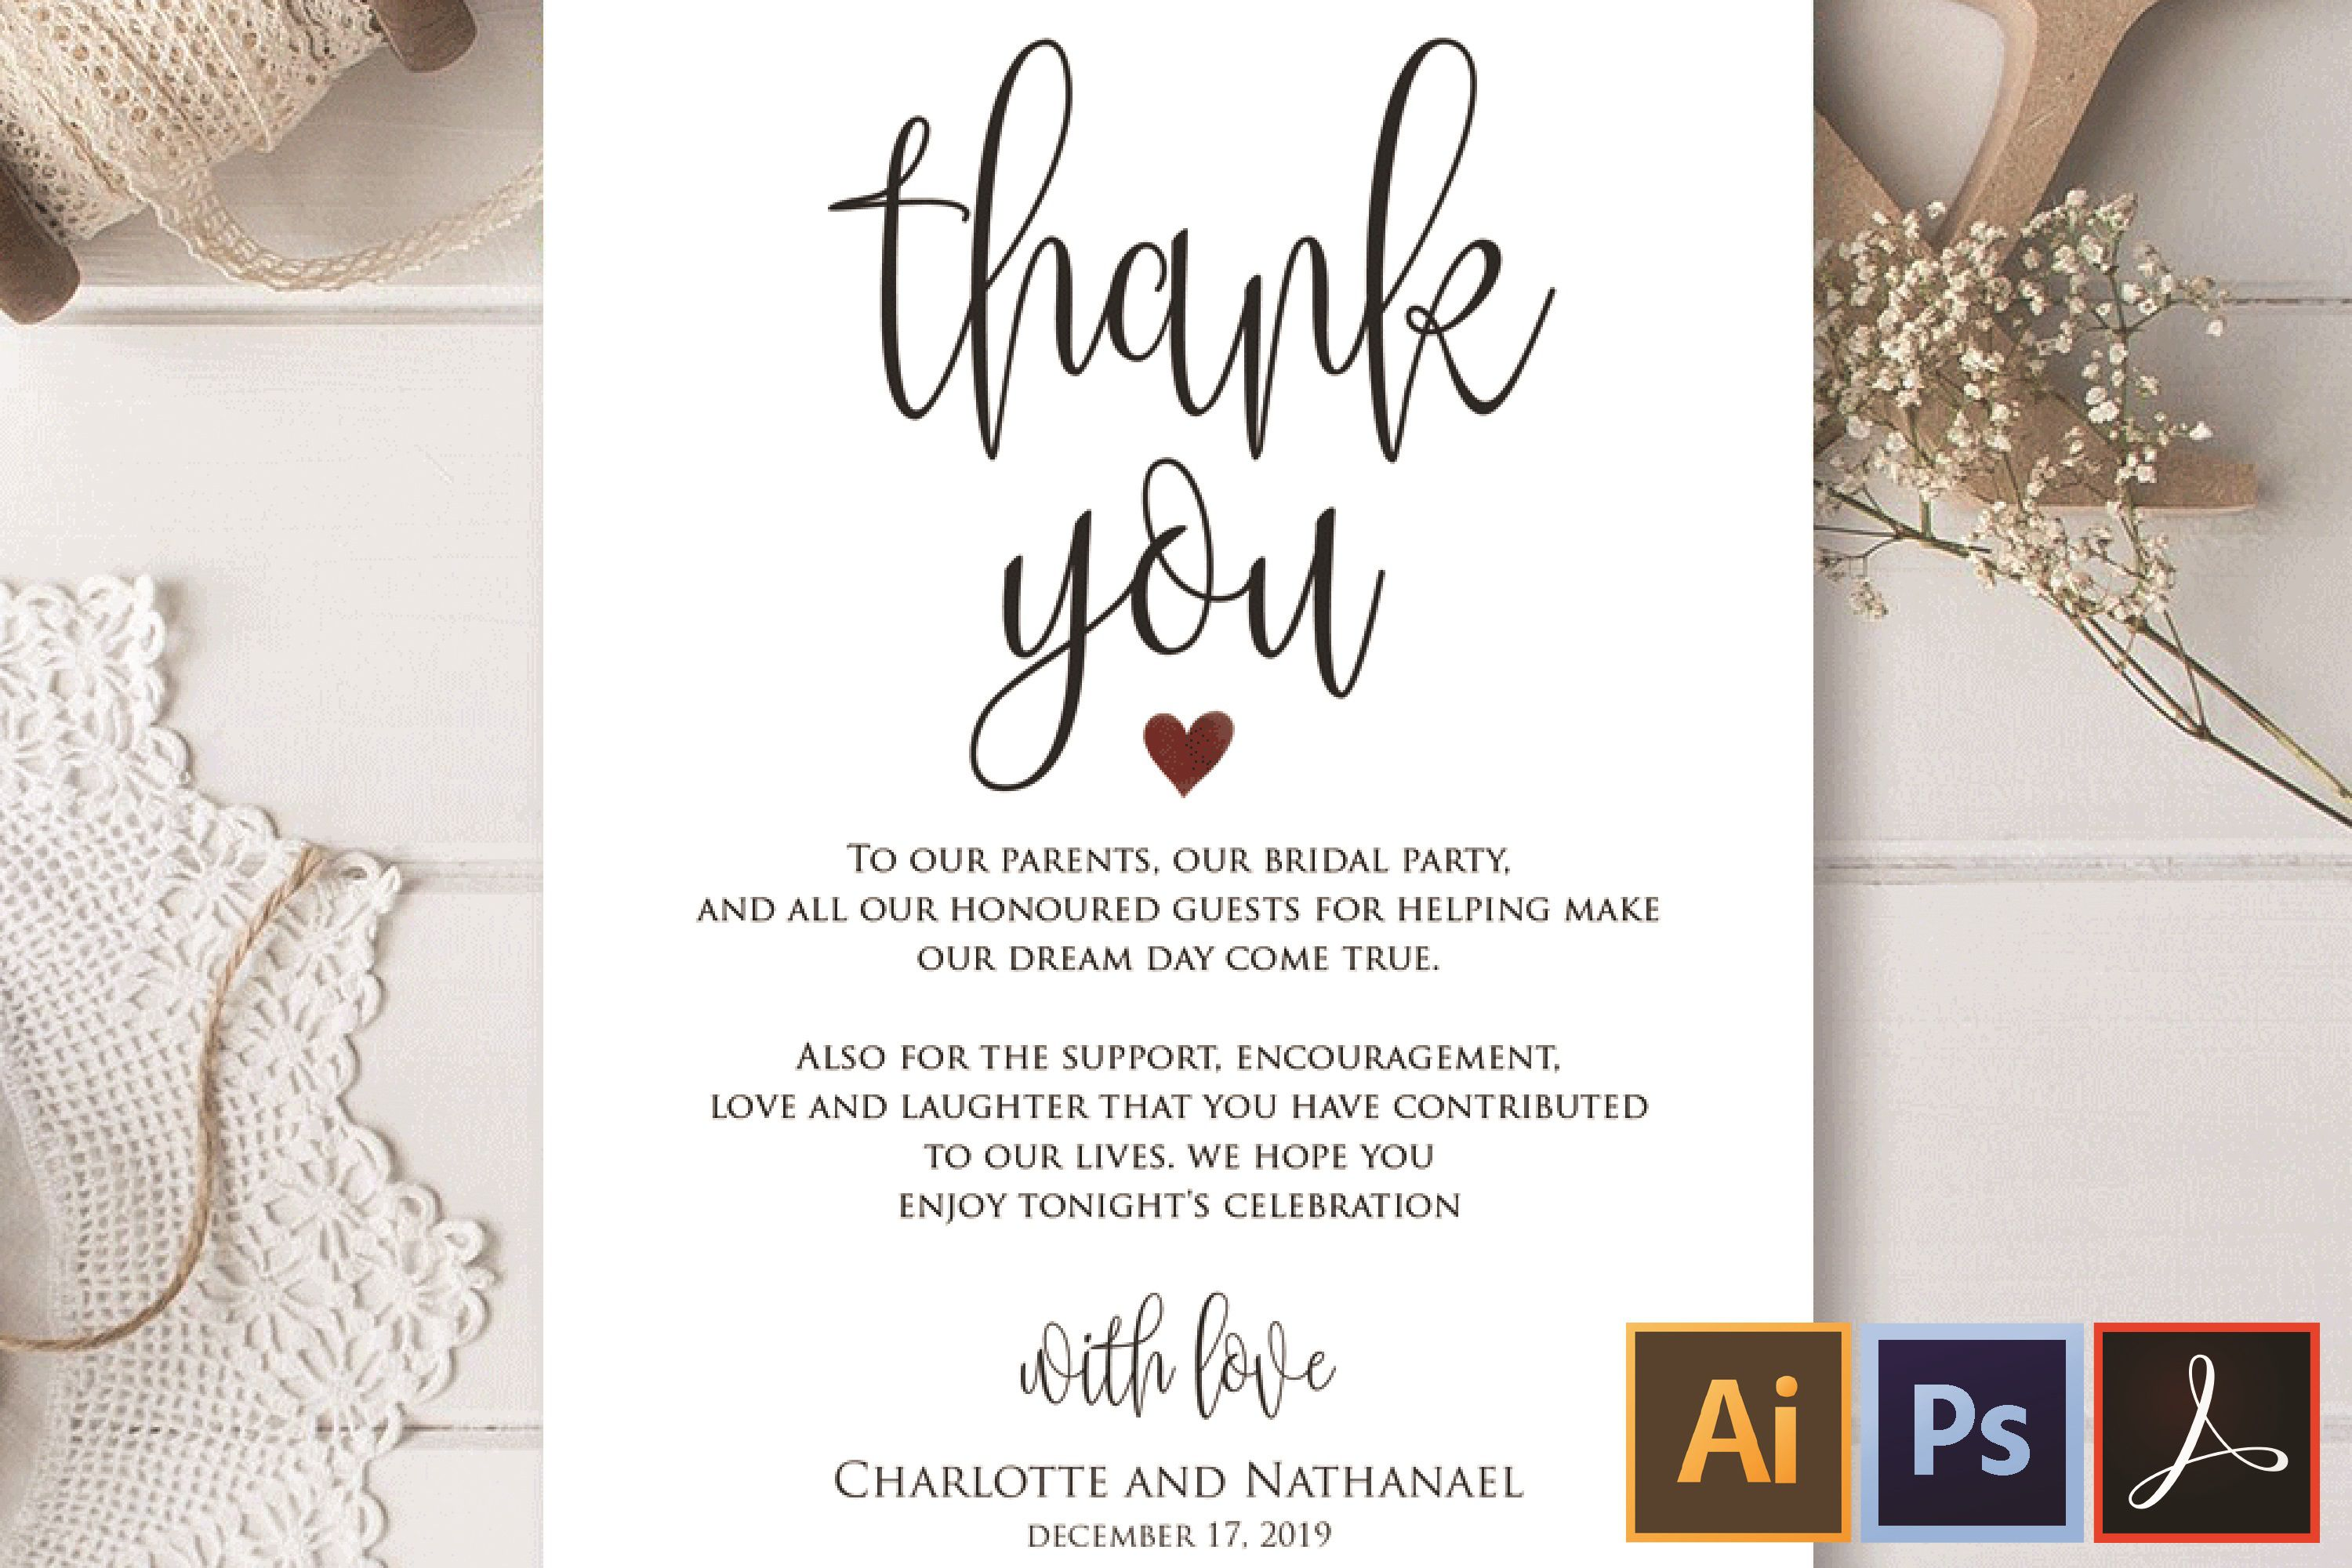 006 Magnificent Wedding Thank You Card Template Example  Message Sample Free Download Wording For MoneyFull